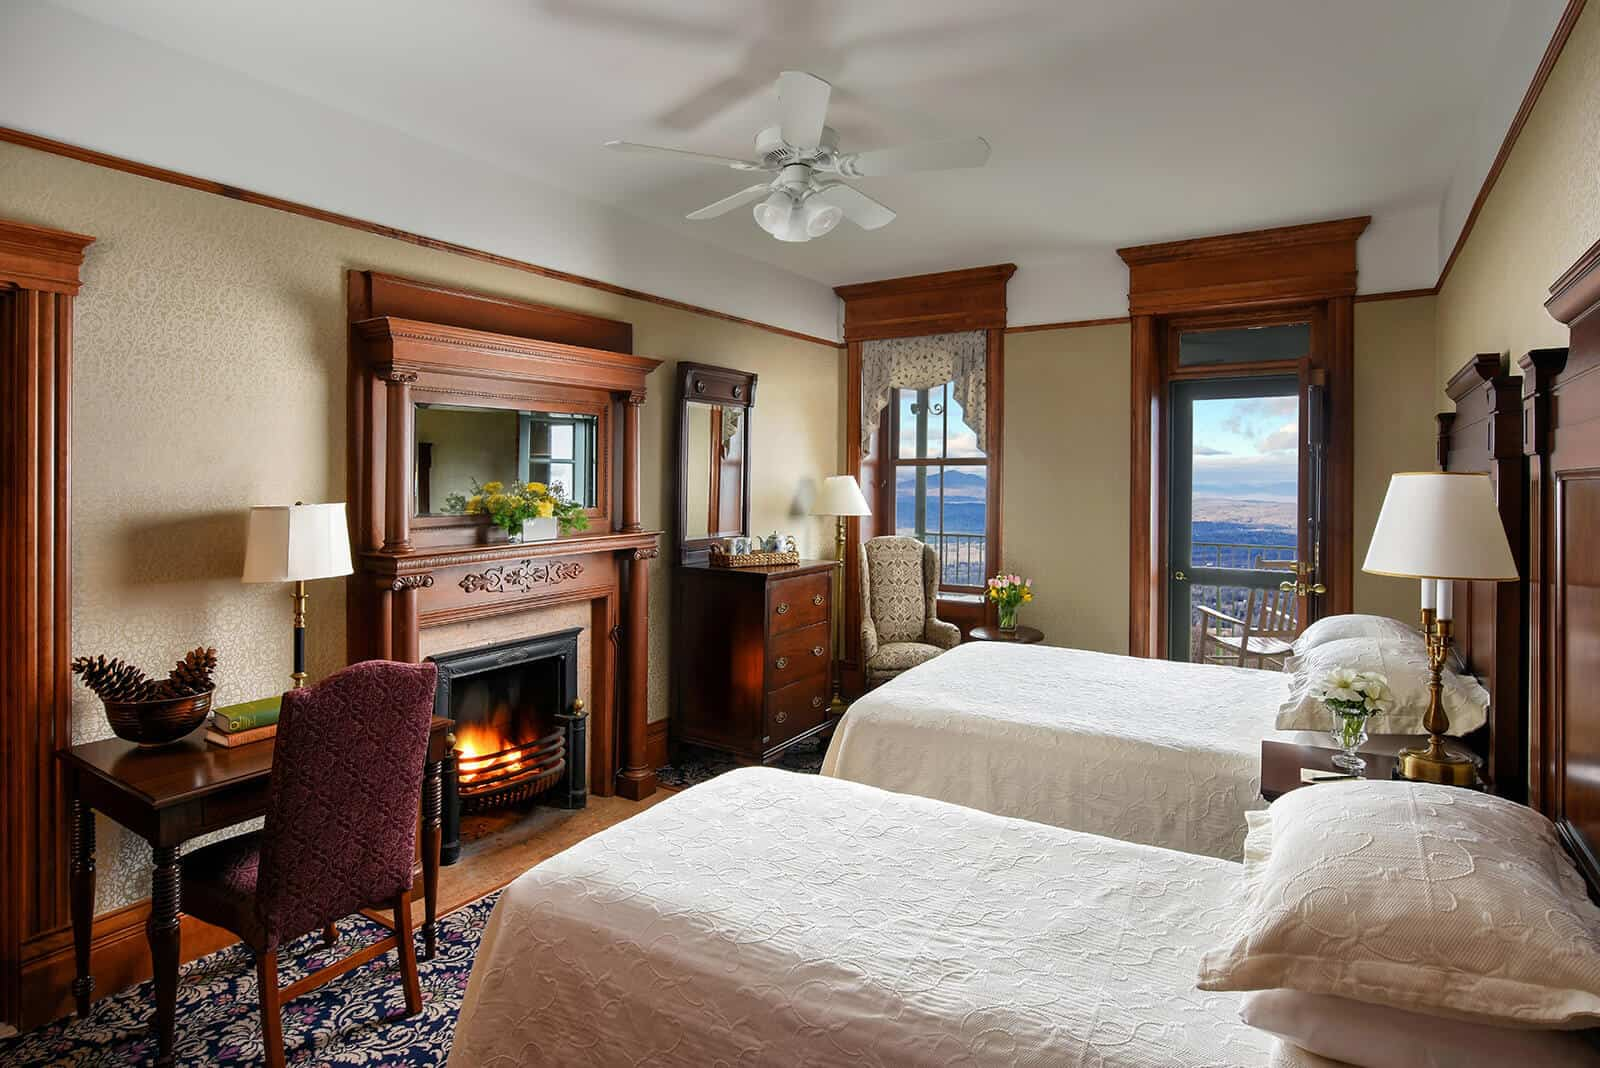 Mohonk Mountain House Accommodations - Hudson Valley View